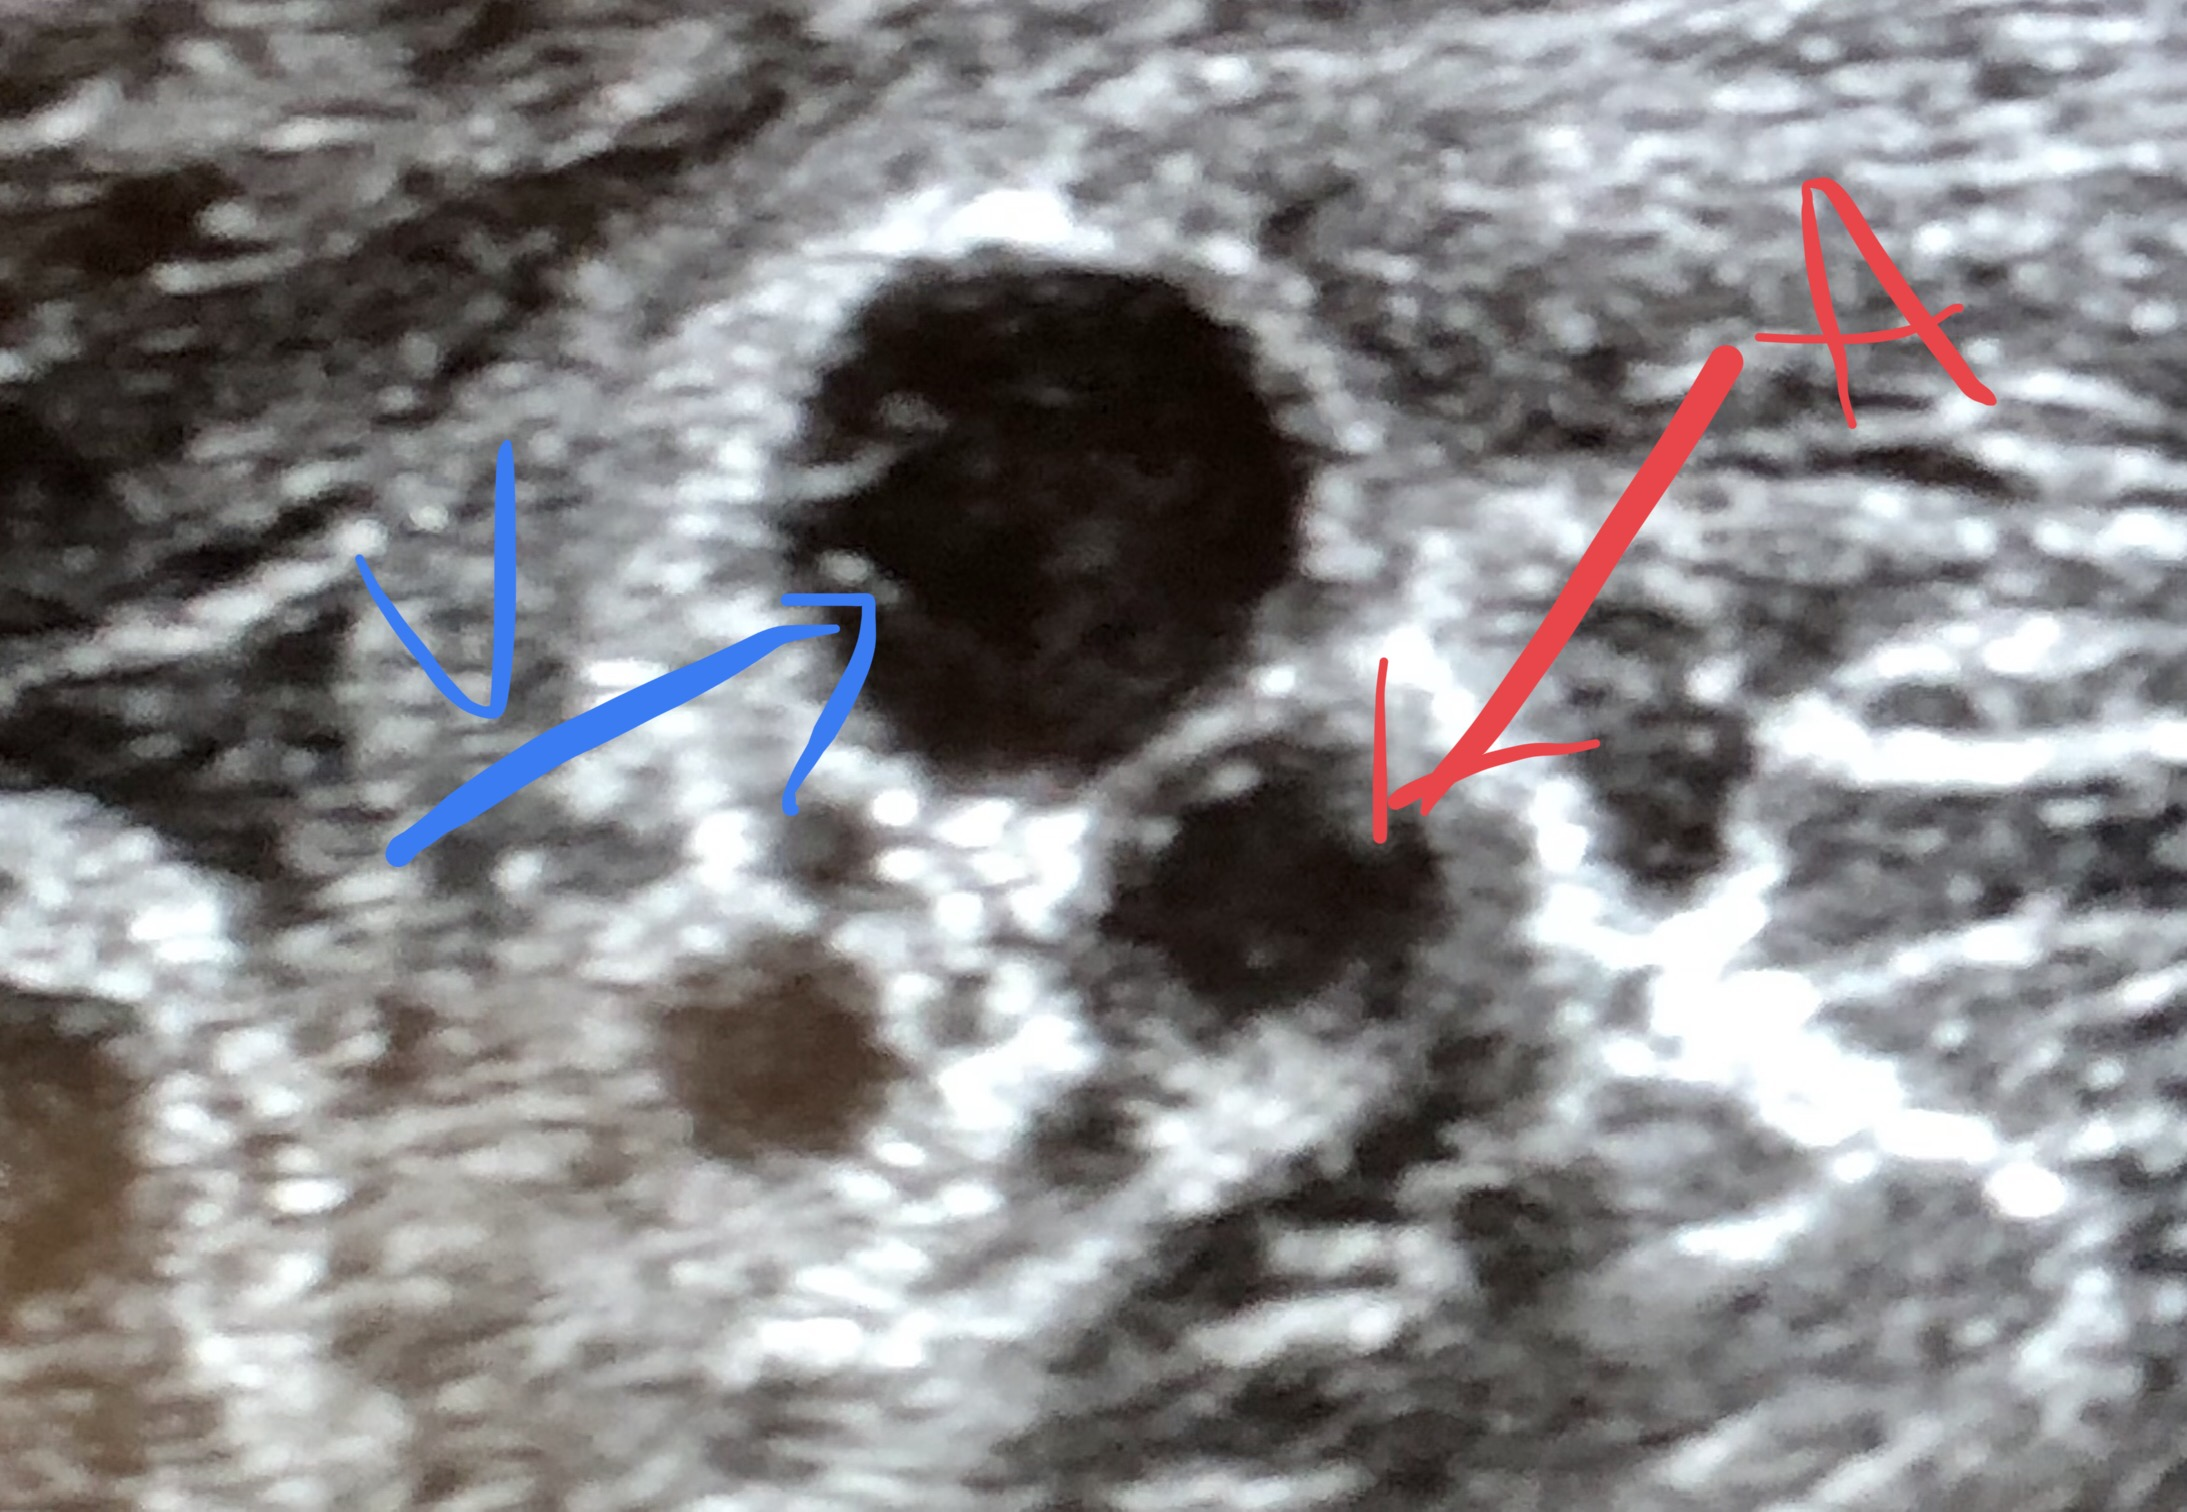 Above: a vein and artery on ultrasound. Veins are usually larger with hypo-echoic walls; when you press down on it, it will easily collapse. Arteries, in contrast, are going to be smaller with  sometimes  hyper-echoic walls (Think PAD). Arteries also pulsate when you push down on them with slight pressure (push down too much and you will obstruct all flow).